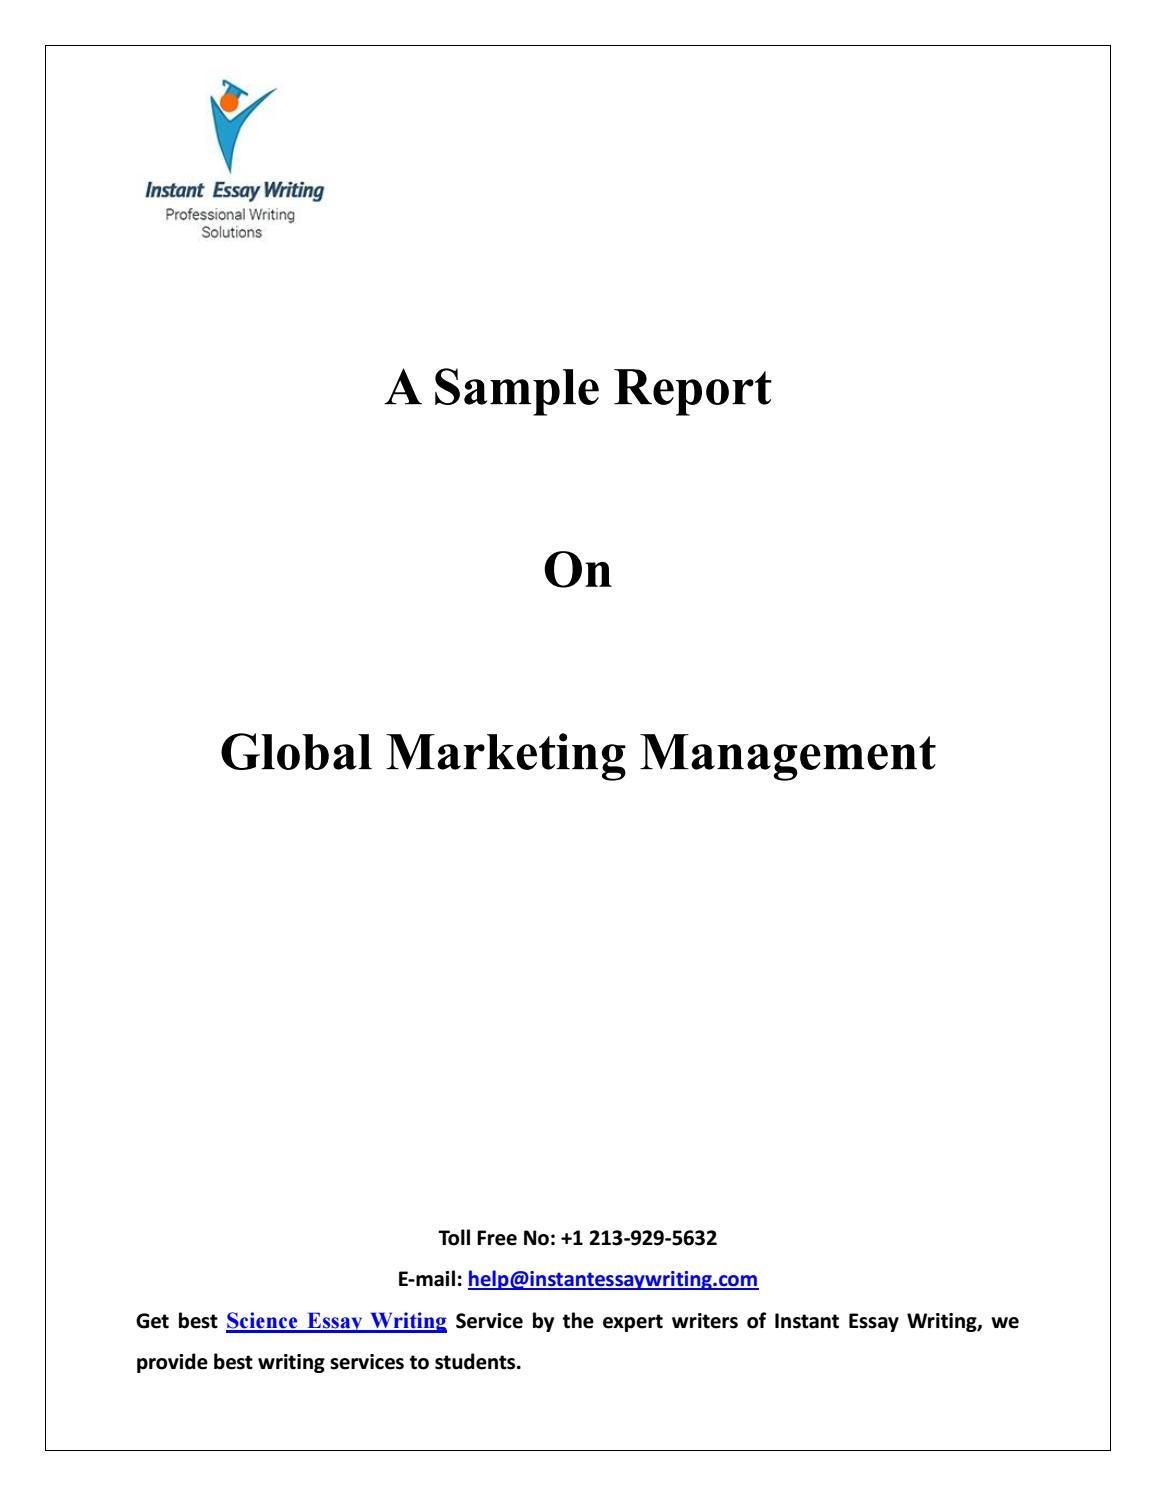 sample on global marketing management by instant essay writing by  sample on global marketing management by instant essay writing by instant essay writing issuu